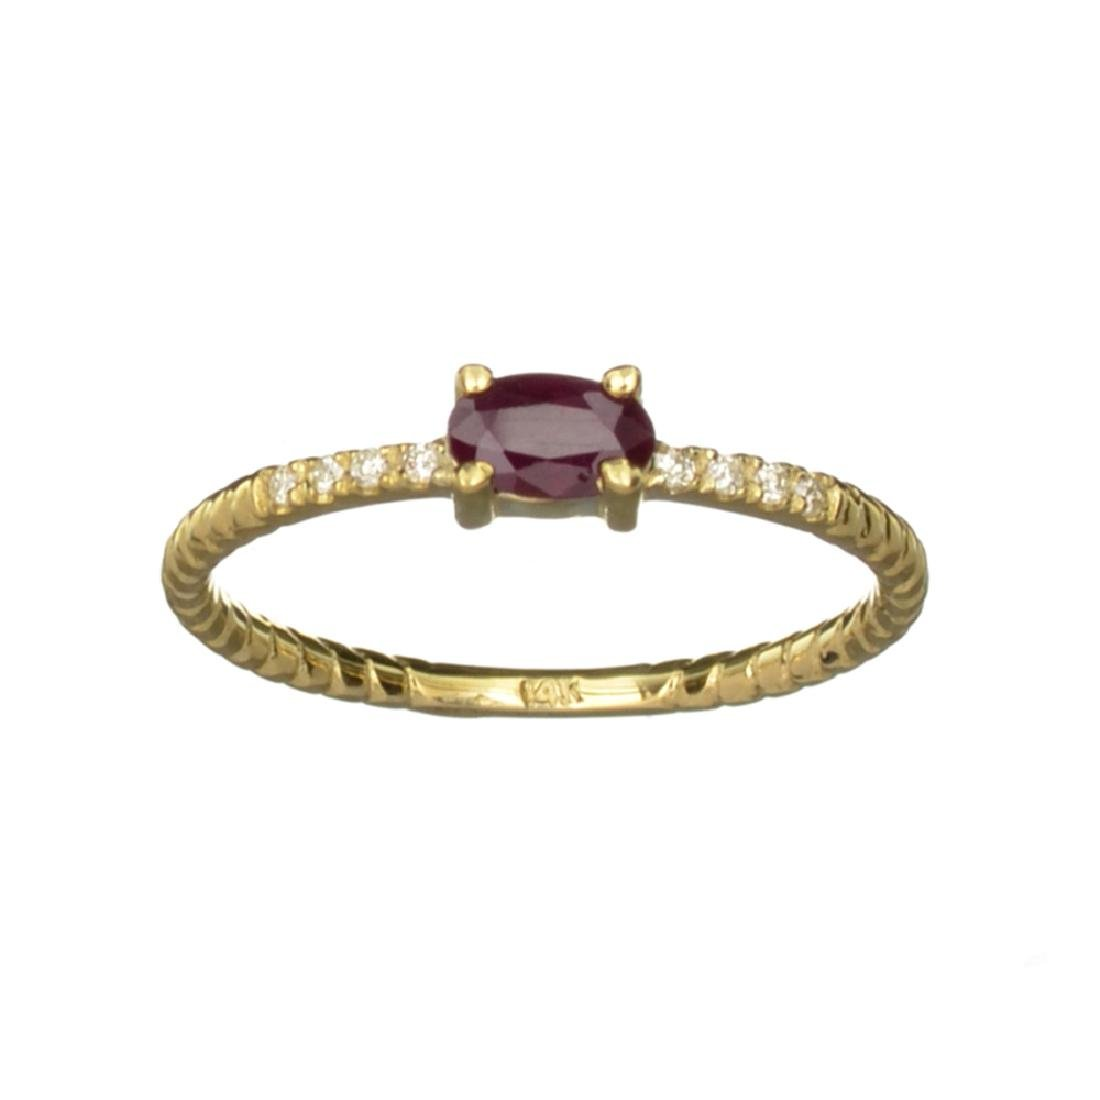 APP: 0.6k Fine Jewelry 14 KT Gold, 0.31CT Ruby And